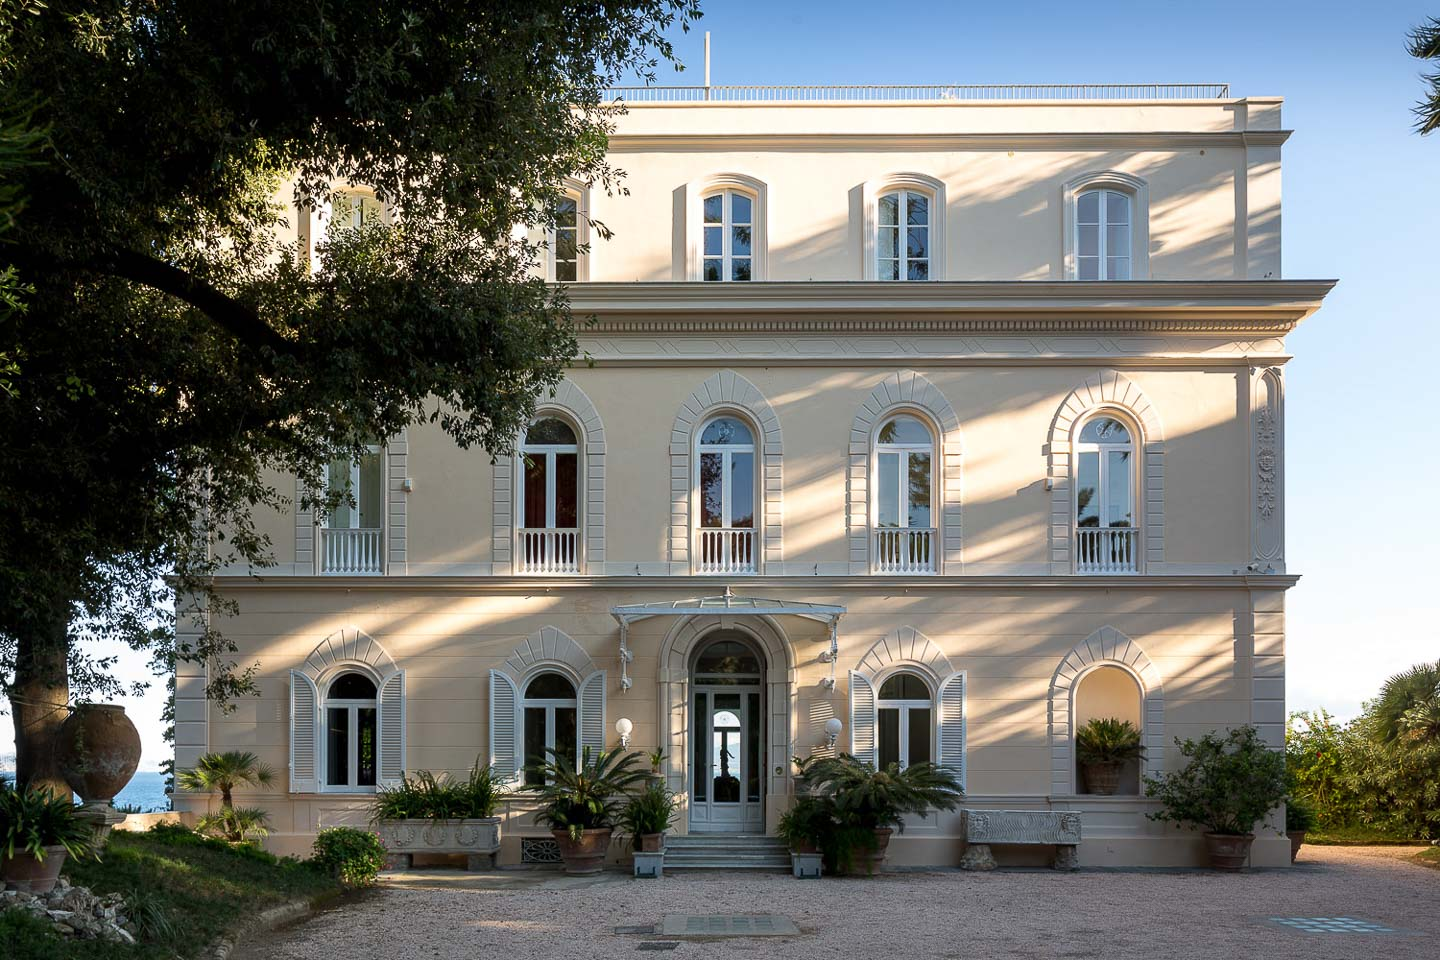 P VA historic residence Benedetto Croce italian history heritage private estate luxury home facade accommodation guest stay Amalfi Coast Sorrento 18 1